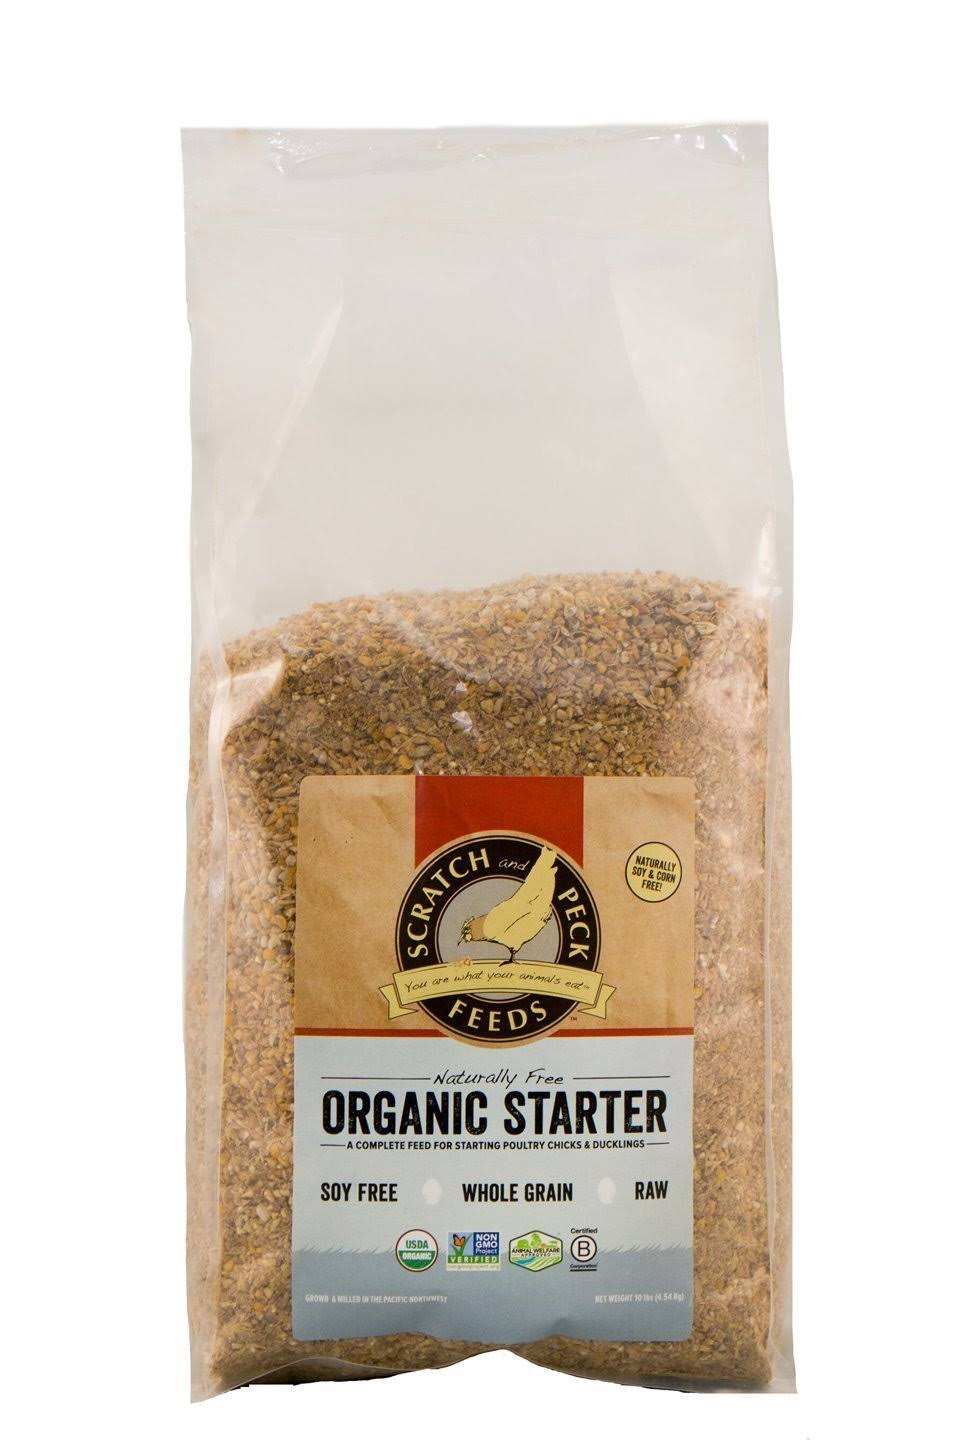 Scratch and Peck Feeds Naturally Free Organic Starter Feed for